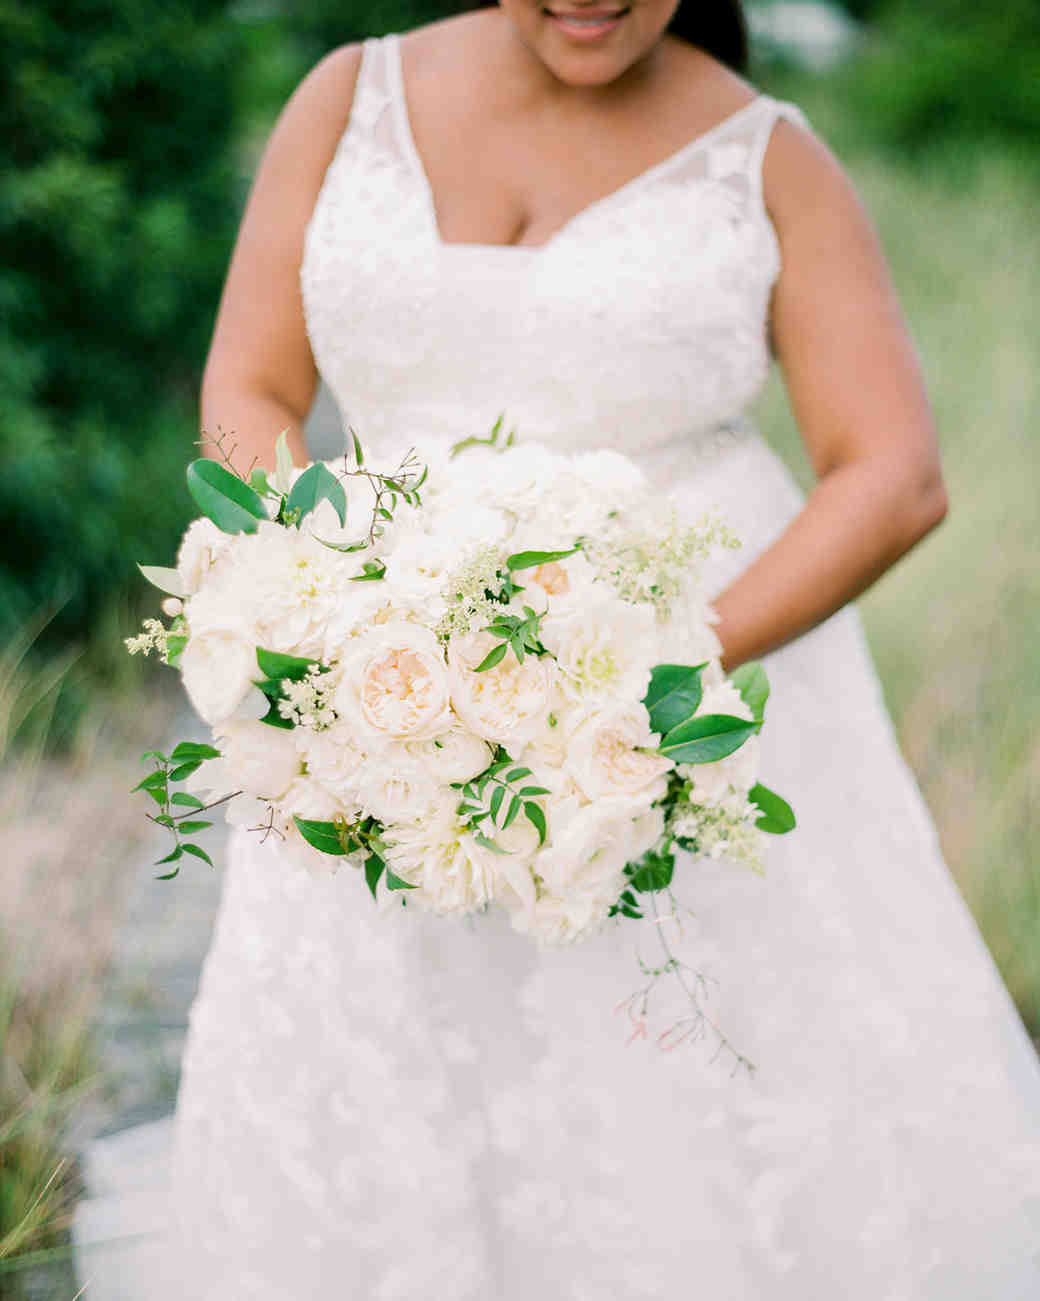 bride holding bouquet of white peonies